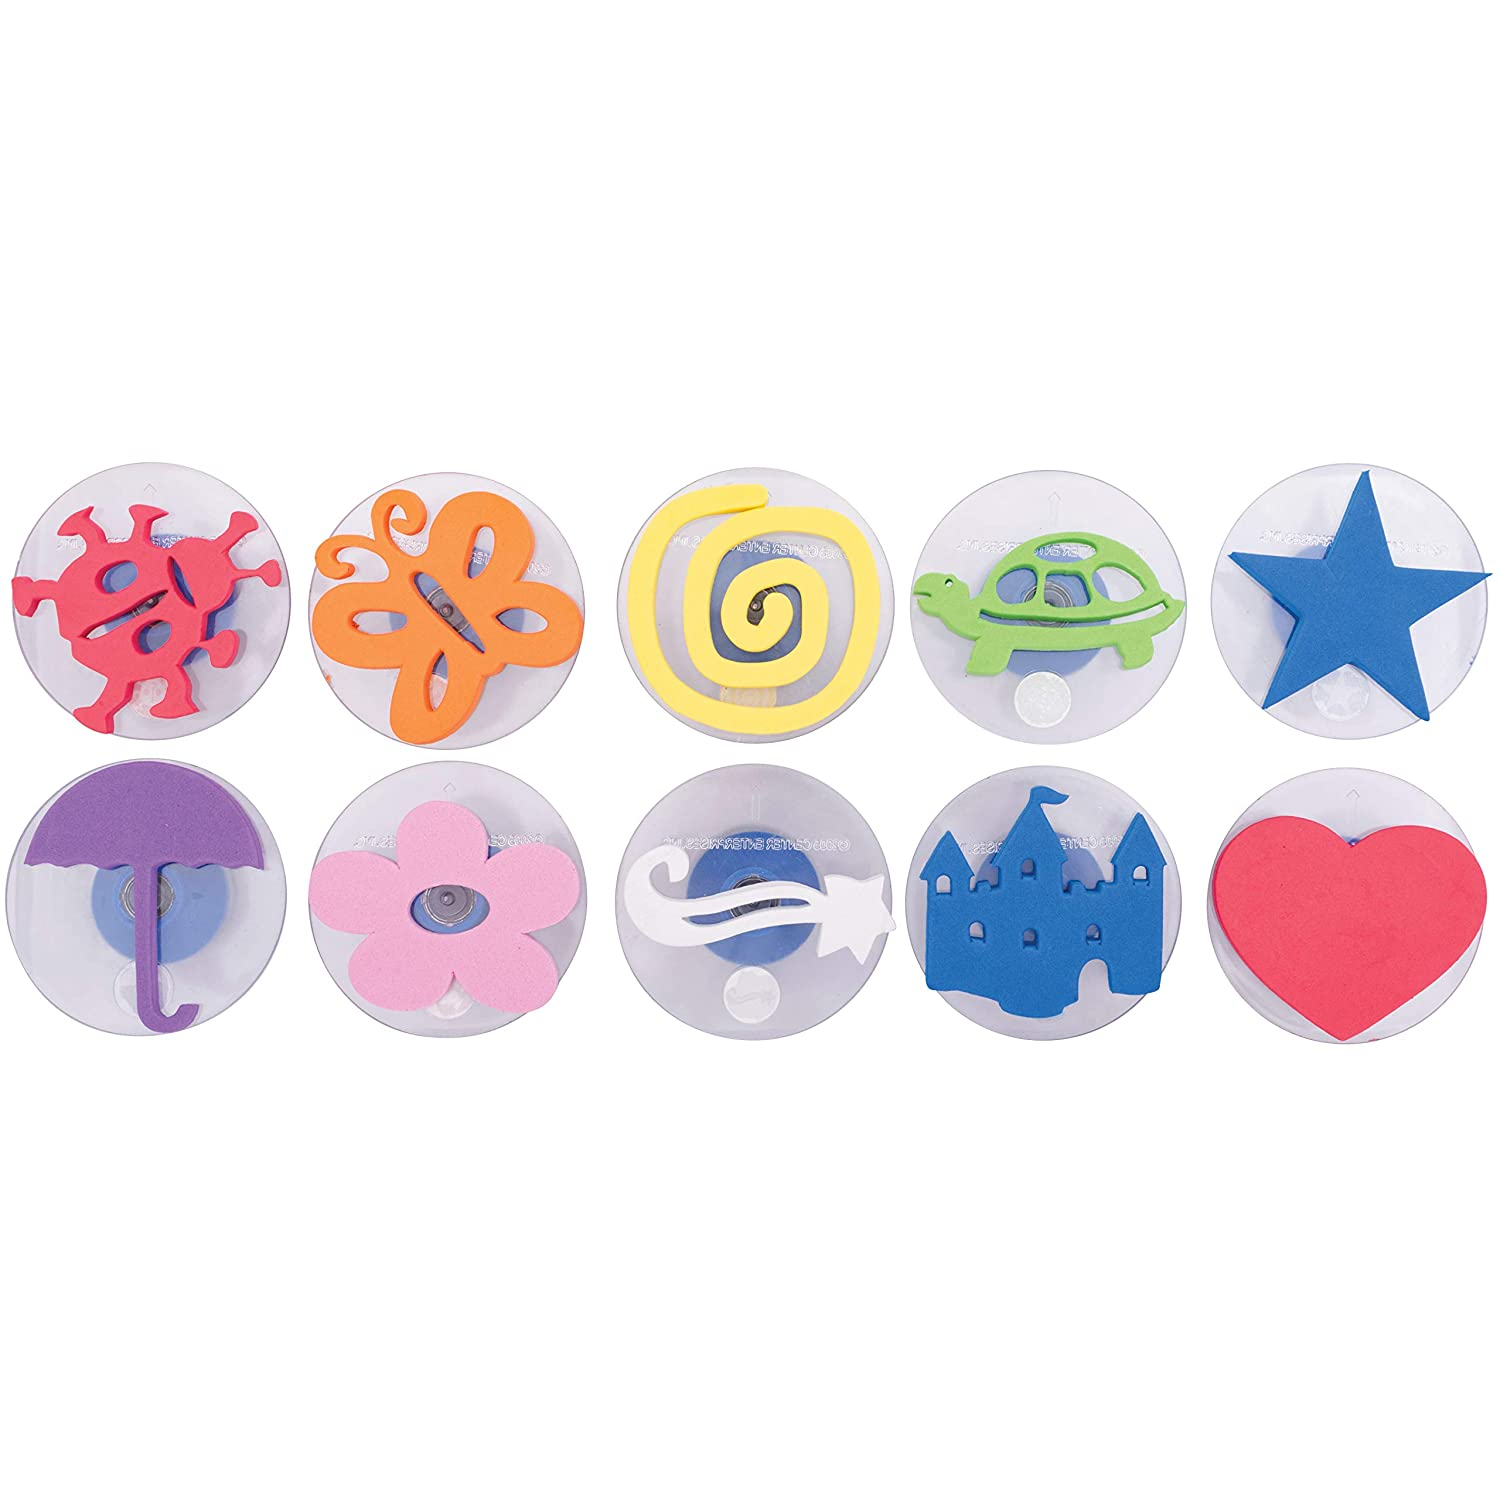 Ready 2 Learn Giant Stampers - Imaginative Play - Set 1 - Set of 10 - Easy to Hold Foam Stamps for Kids - Arts and Crafts Stamps for Displays, Posters, Signs and DIY Projects